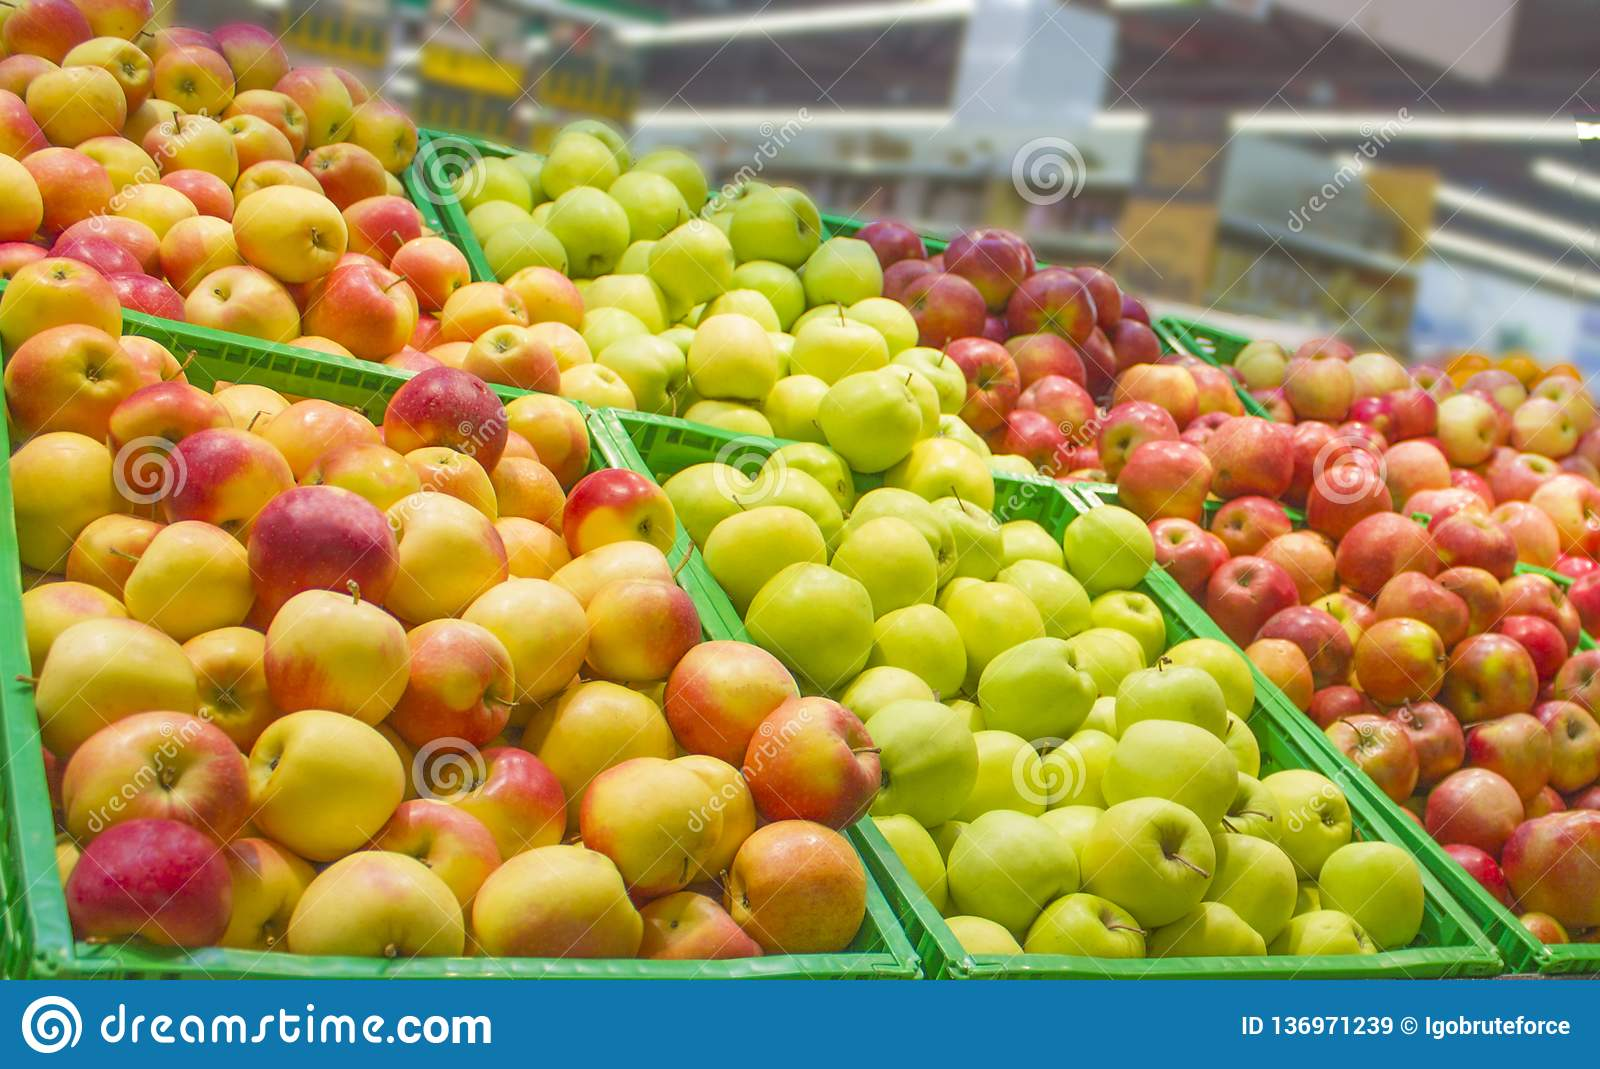 Showcase filled with multi-colored apples of different varieties